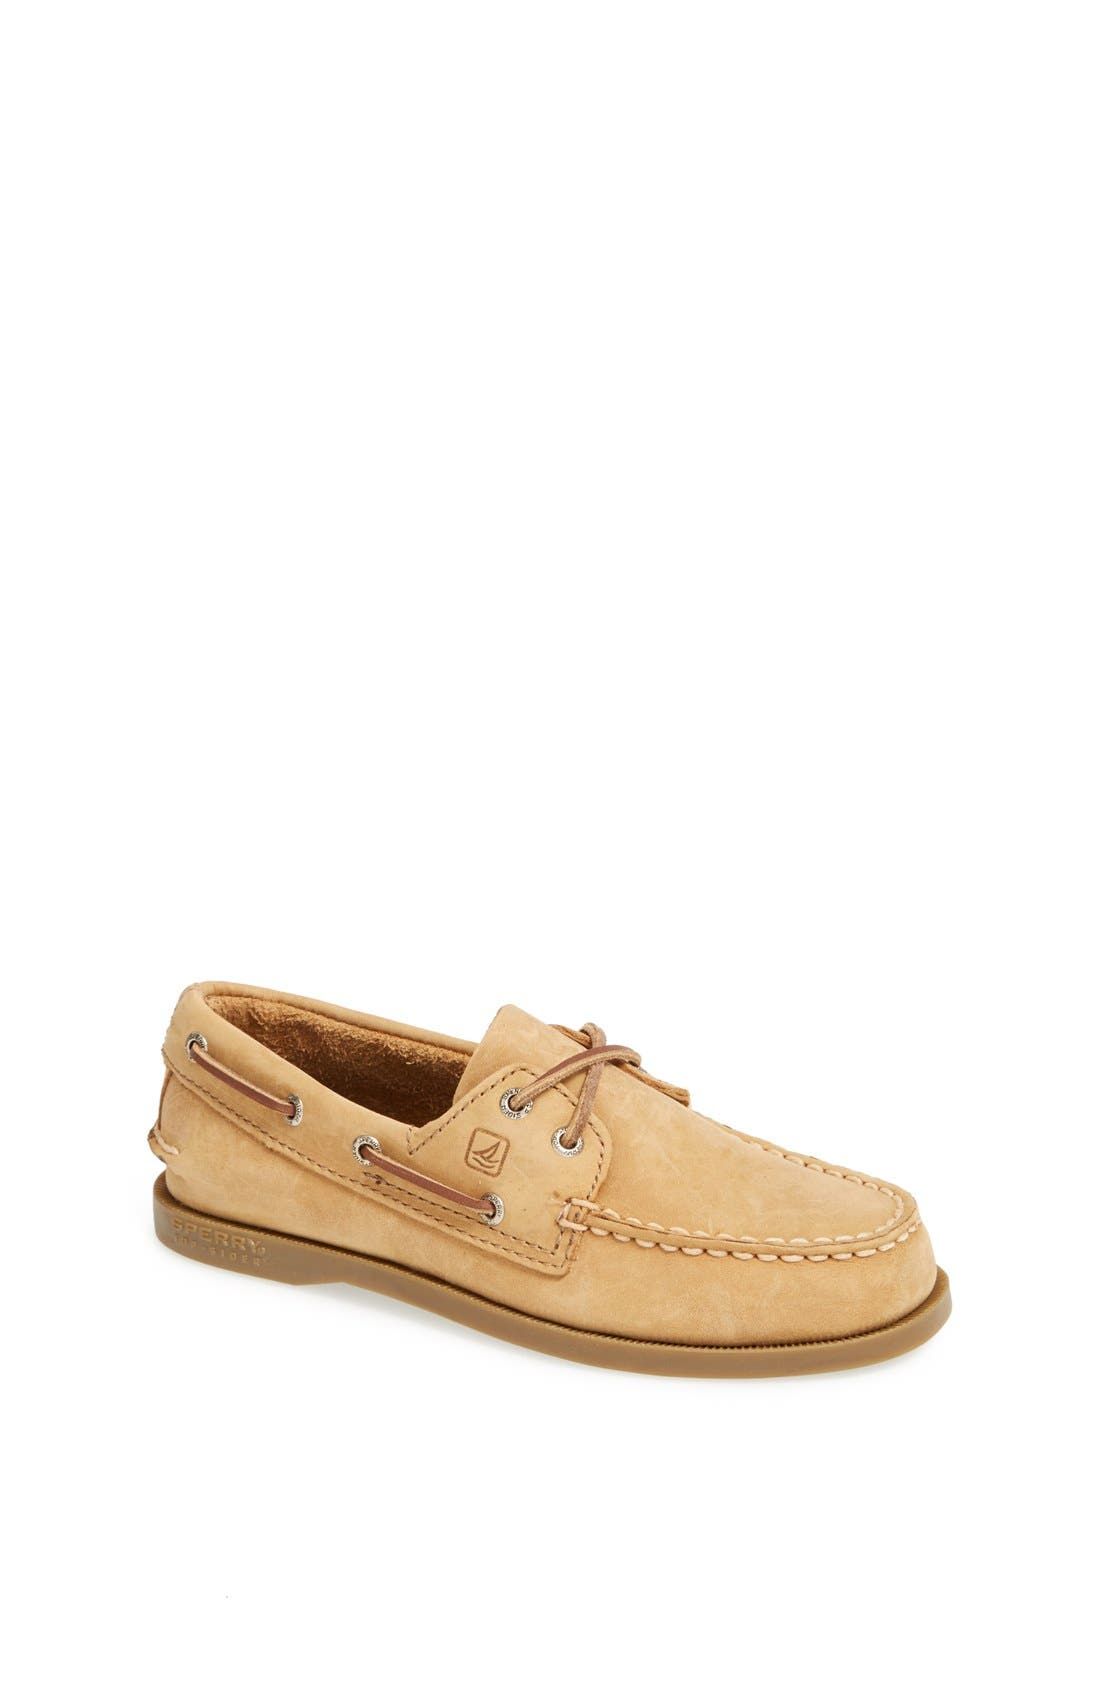 'Authentic Original' Boat Shoe,                         Main,                         color, SAHARA LEATHER